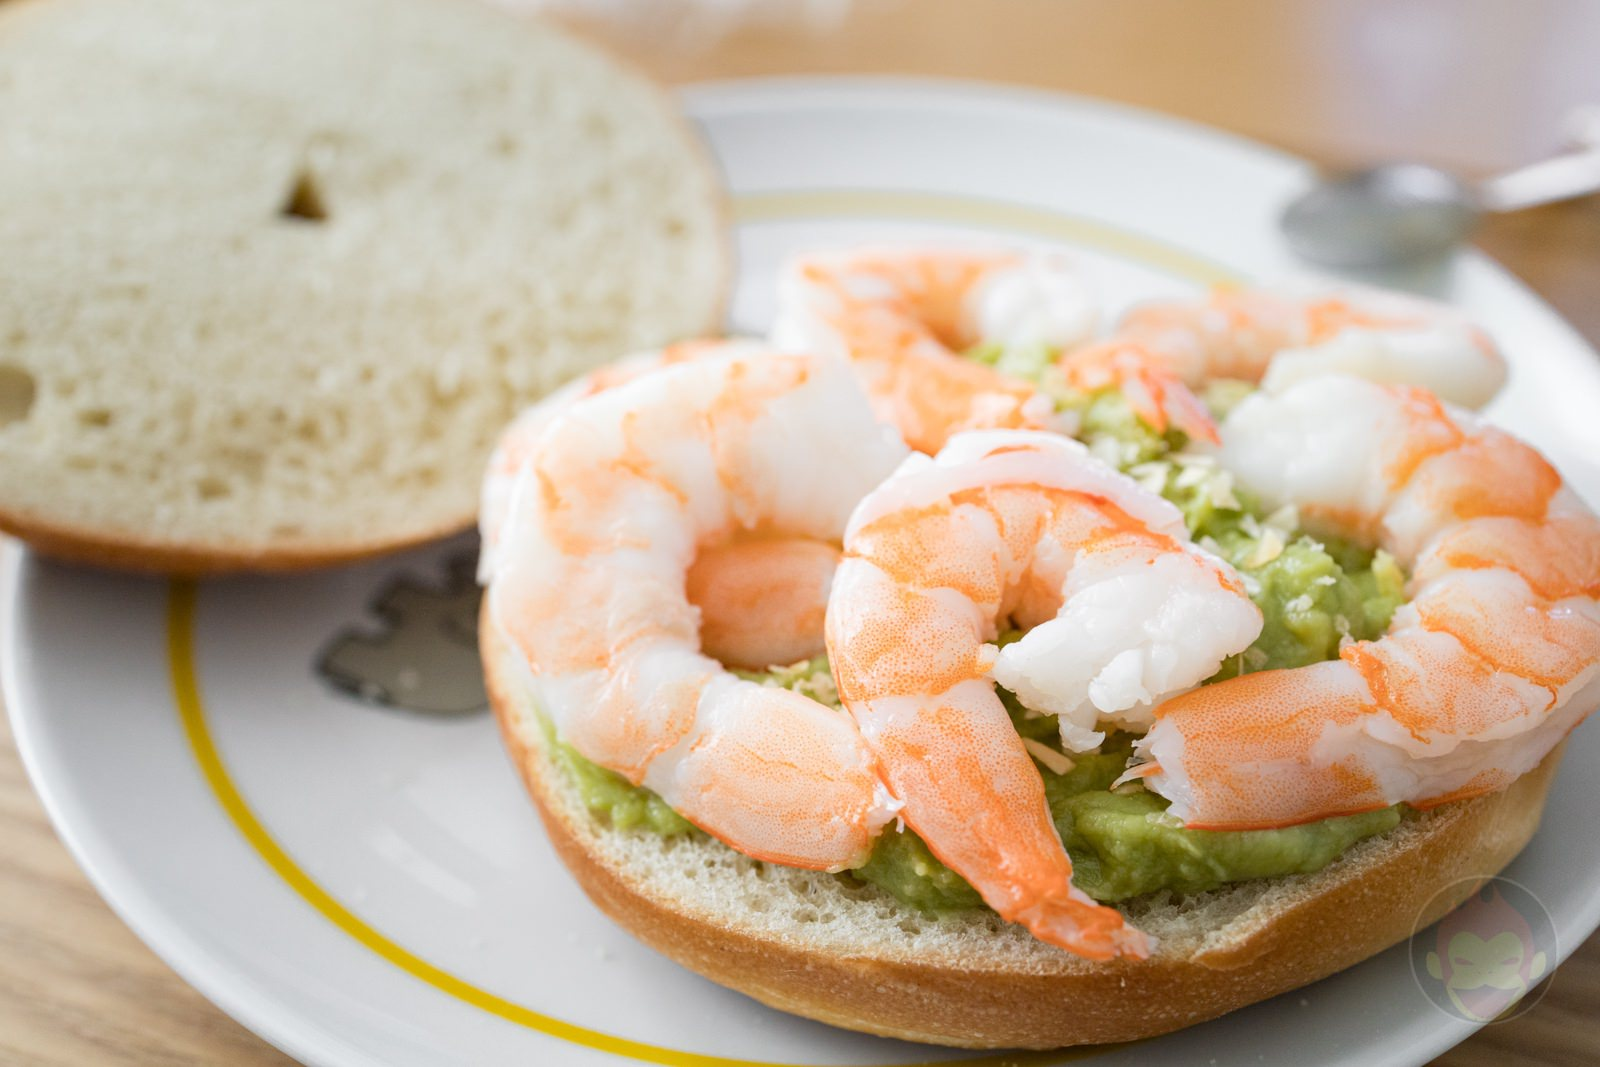 Costco Shrimp Avocado Guacamole Bagel Sandwich 10